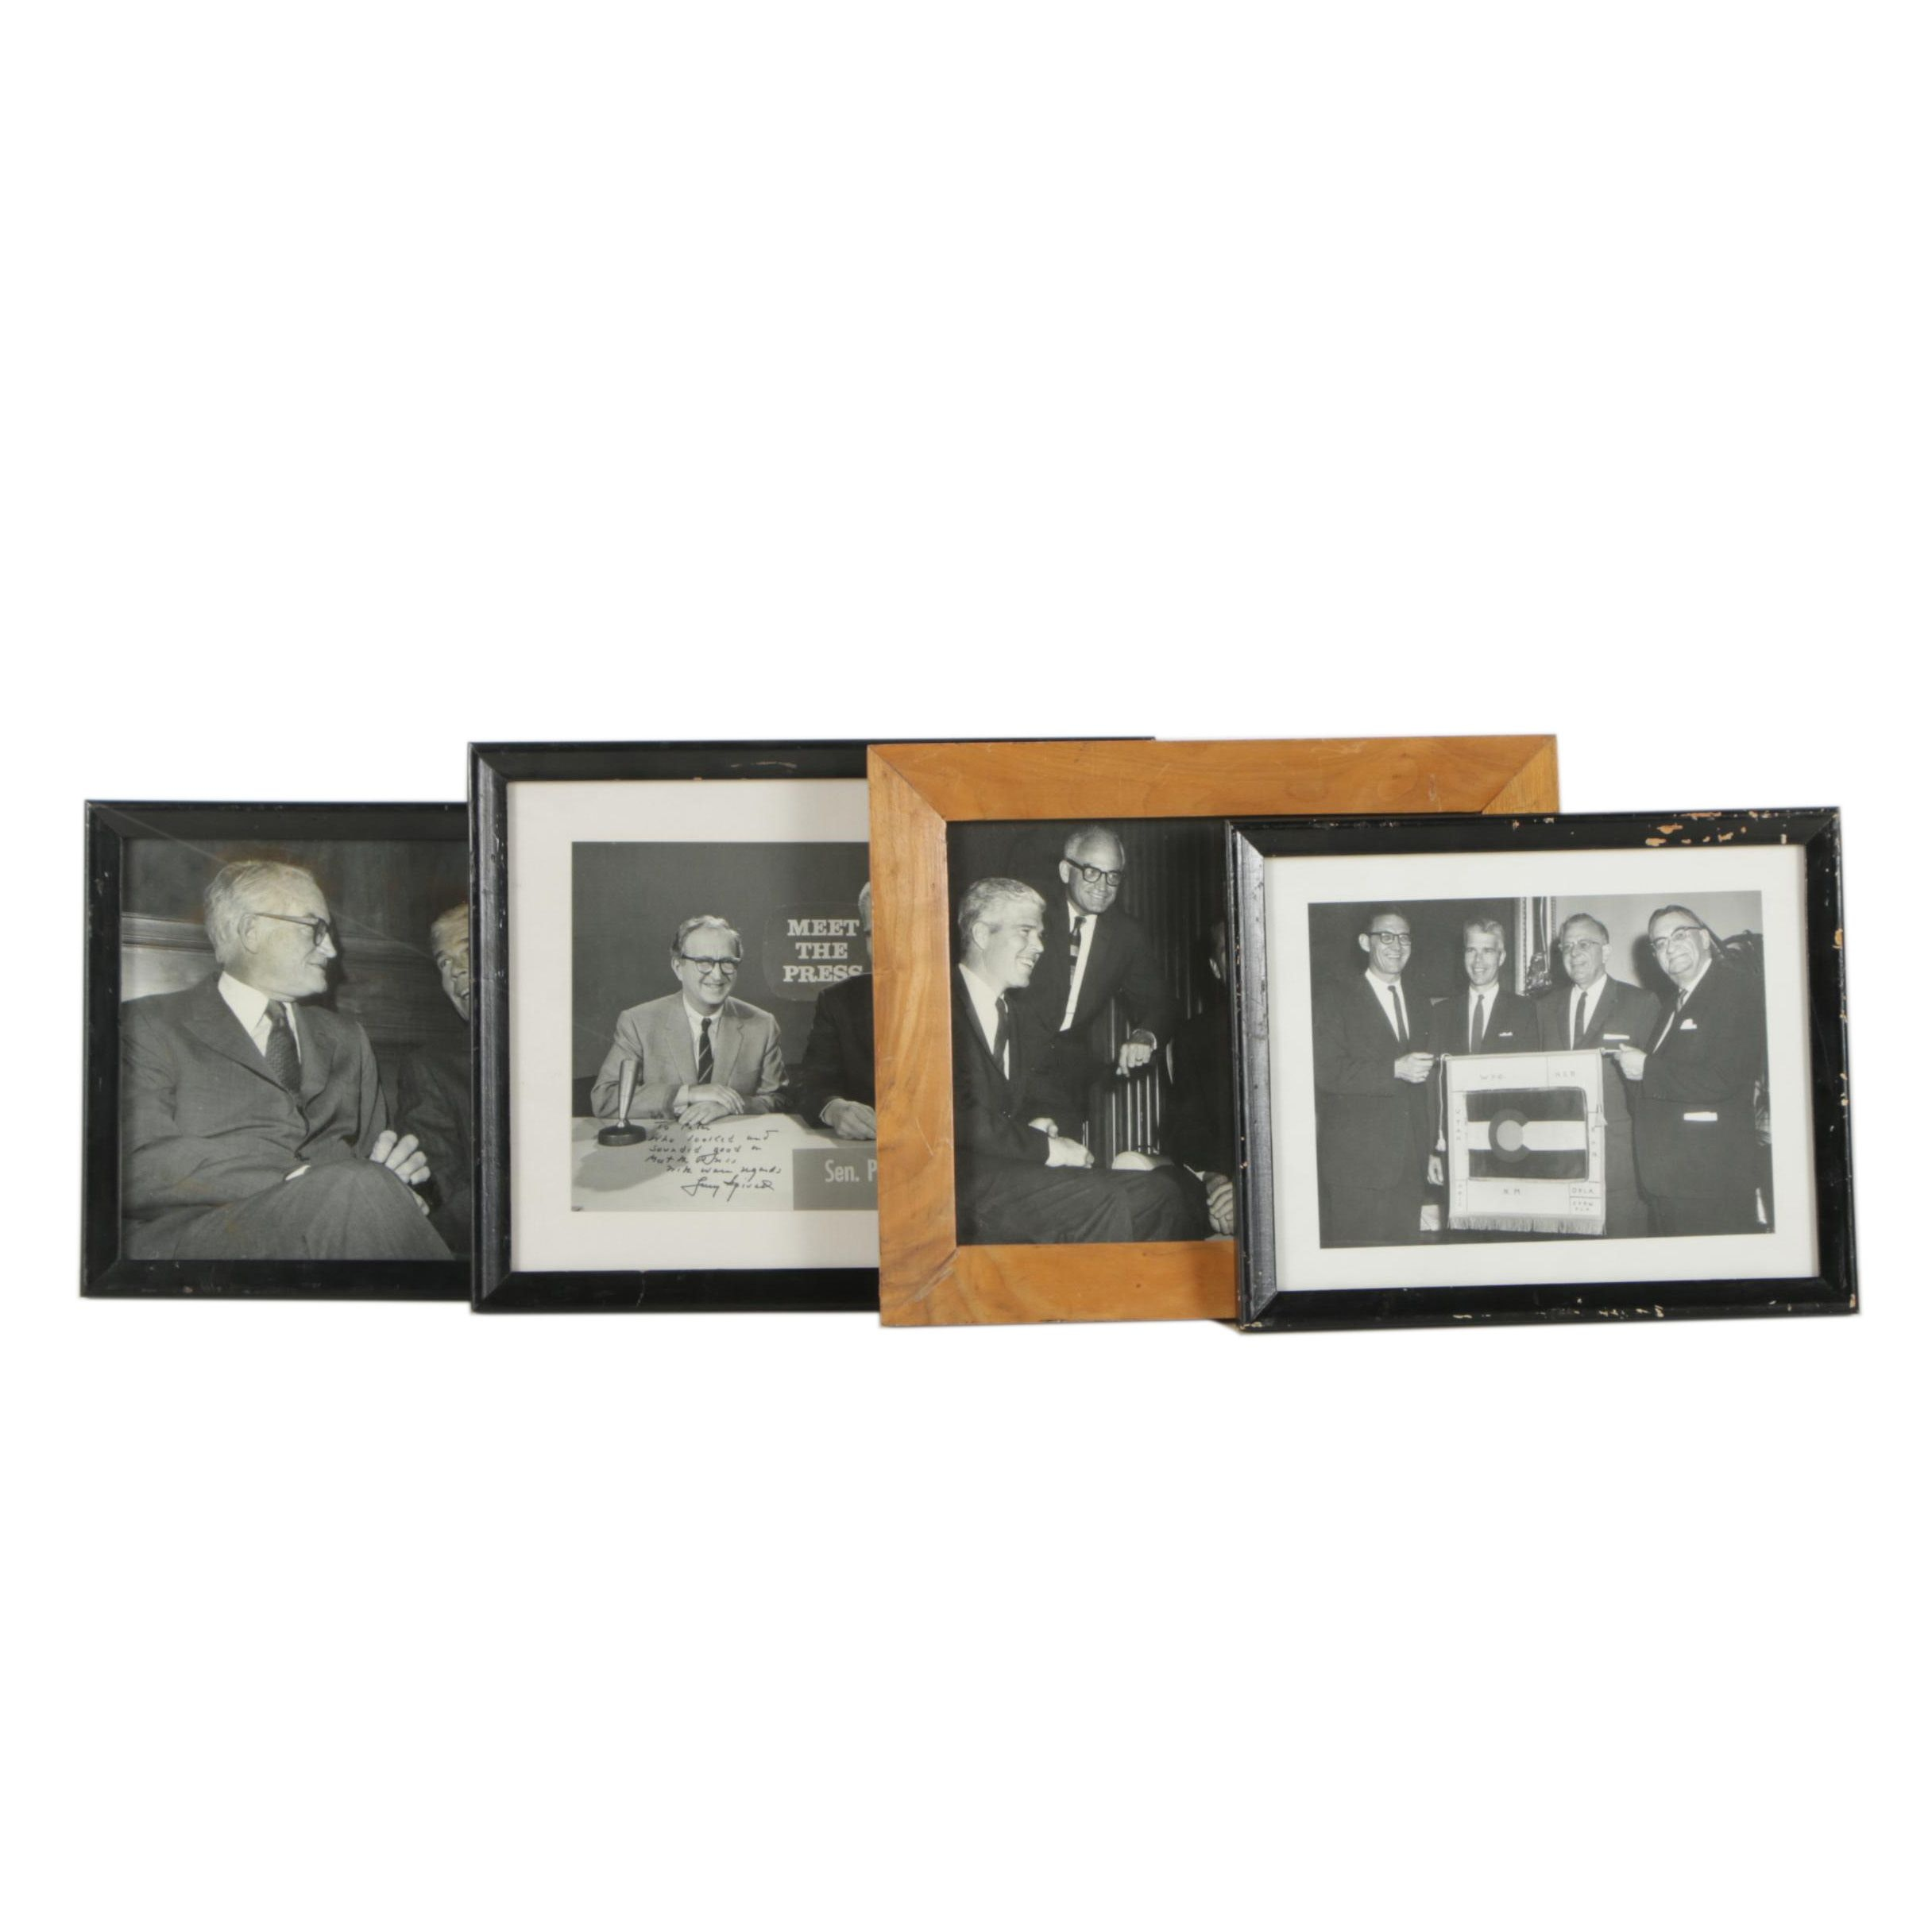 Photos Including Larry Spivak Autograph, Peter Dominick and Barry Goldwater